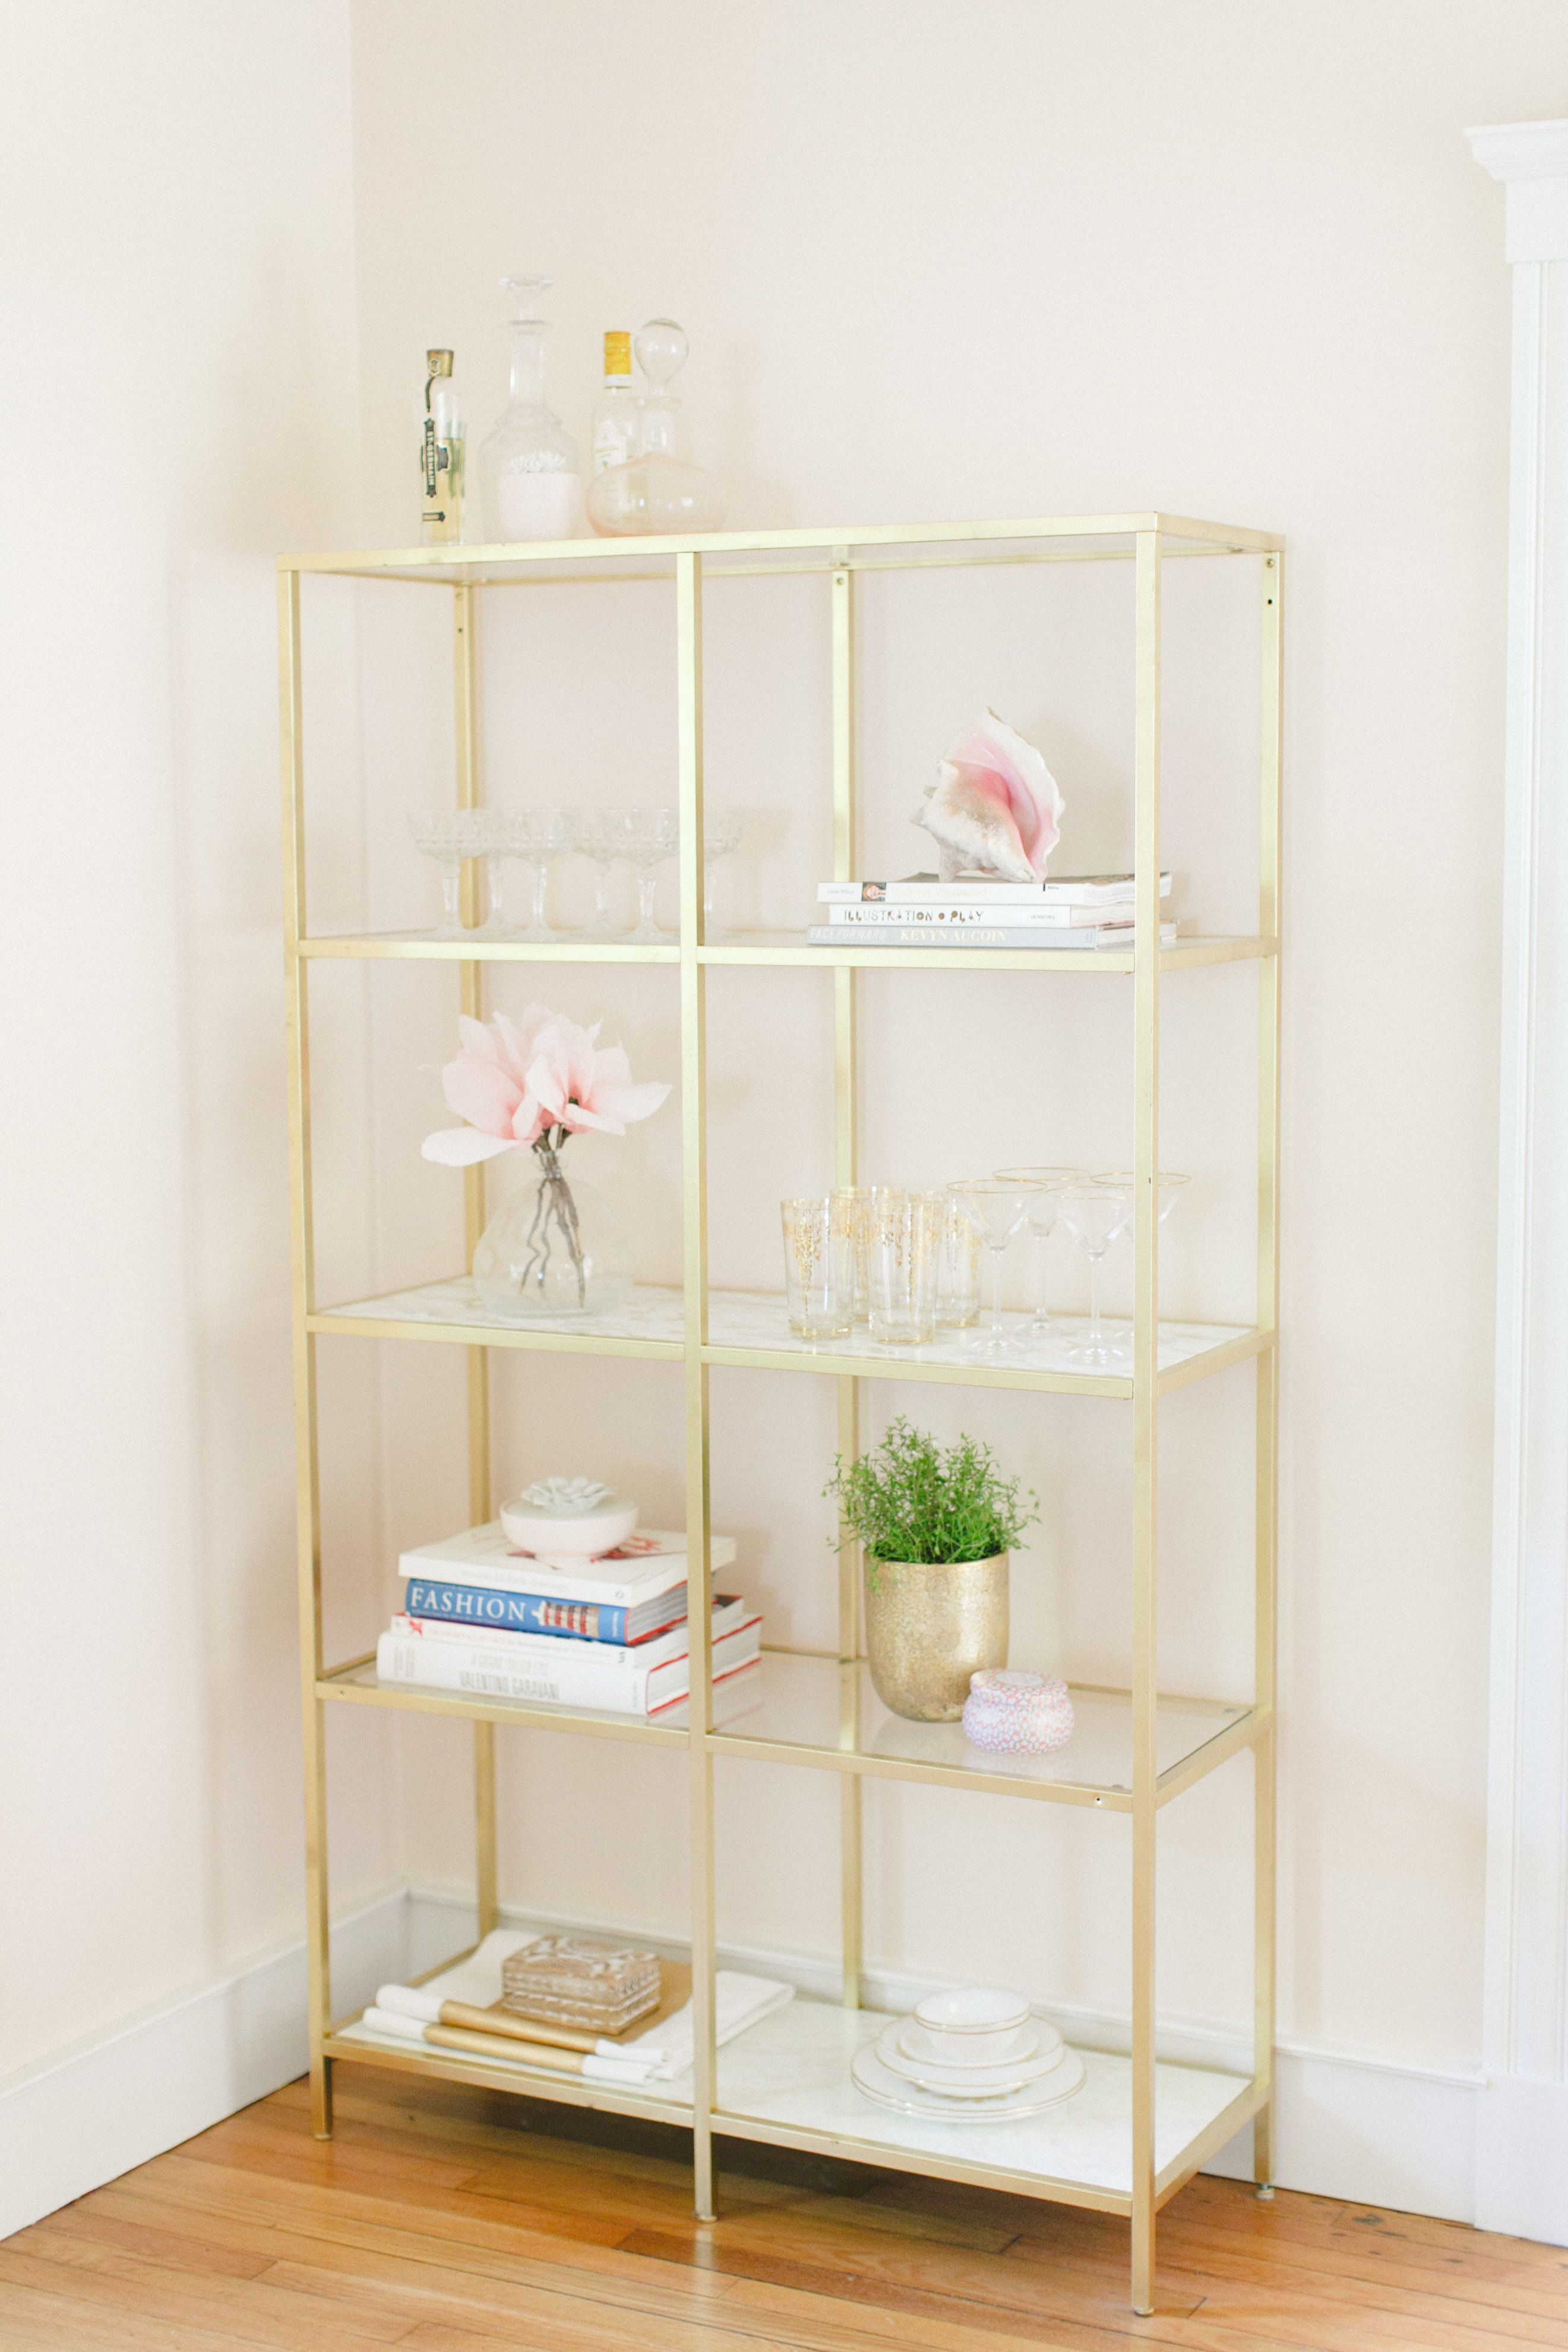 Meubles Cases Ikea Ikea Hack Gold Marble Shelves Design With Ikea Pinterest